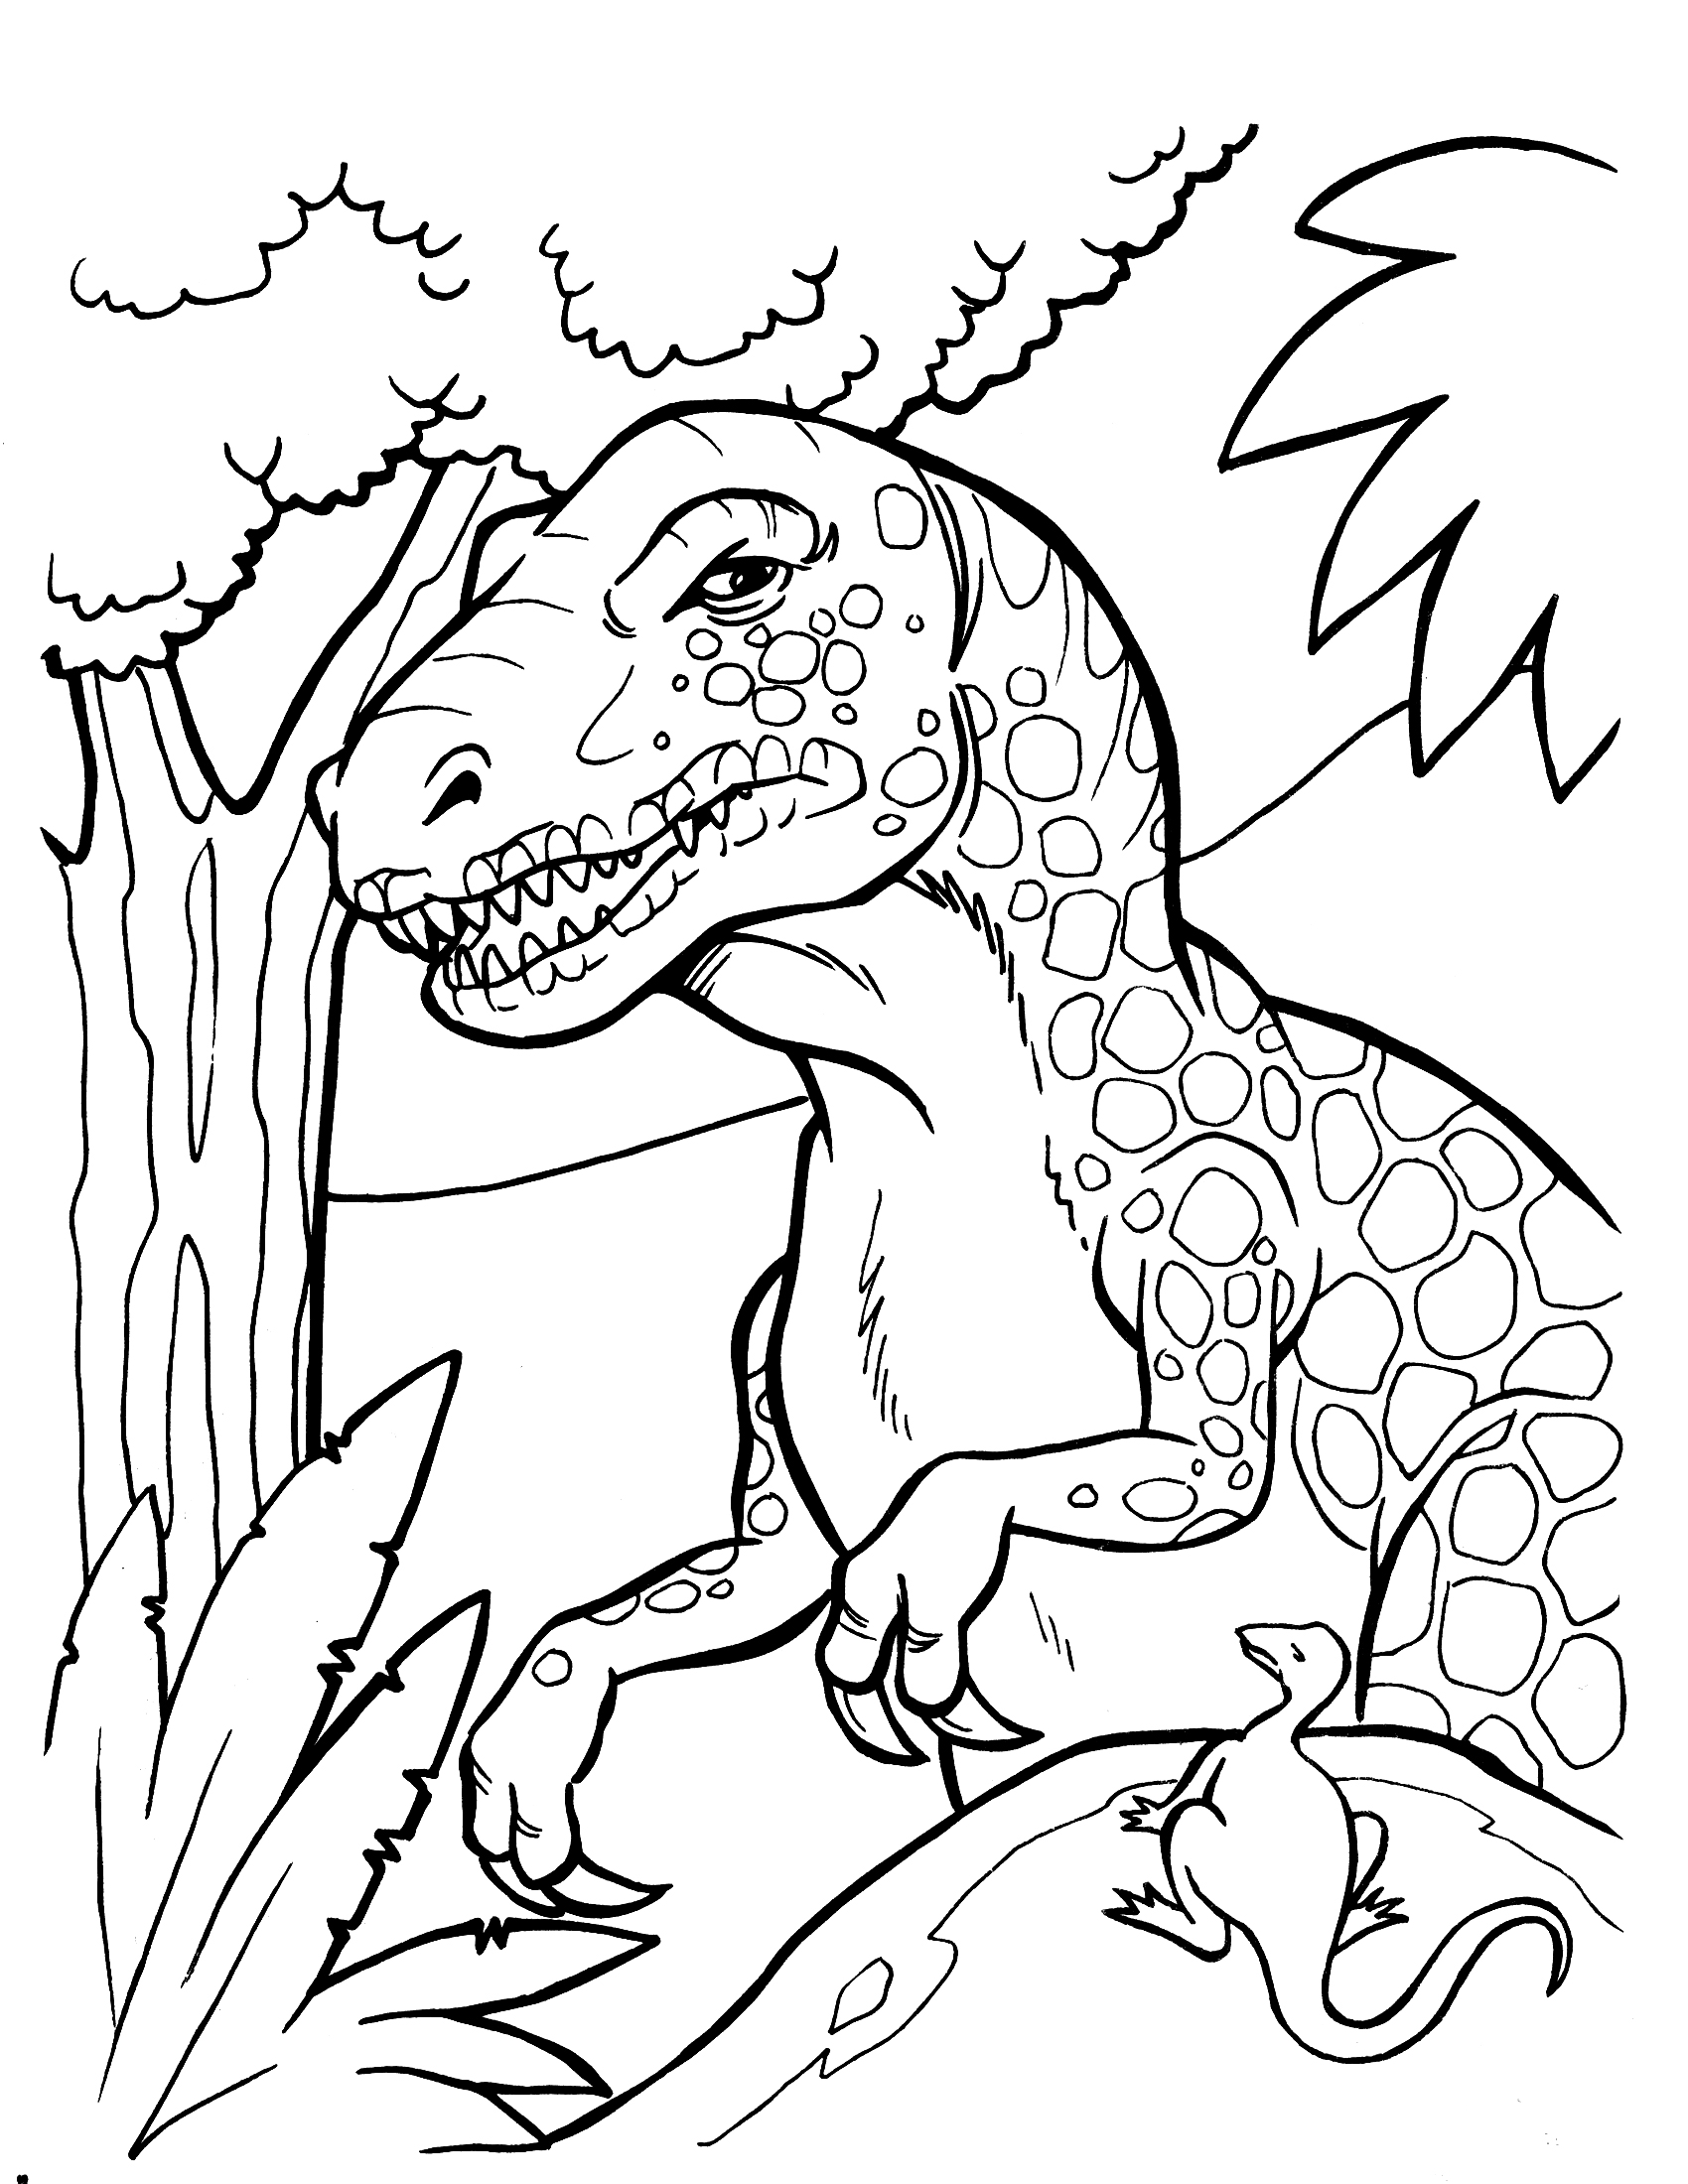 Dinosaur coloring pages 360coloringpages for Free printable cartoon coloring pages